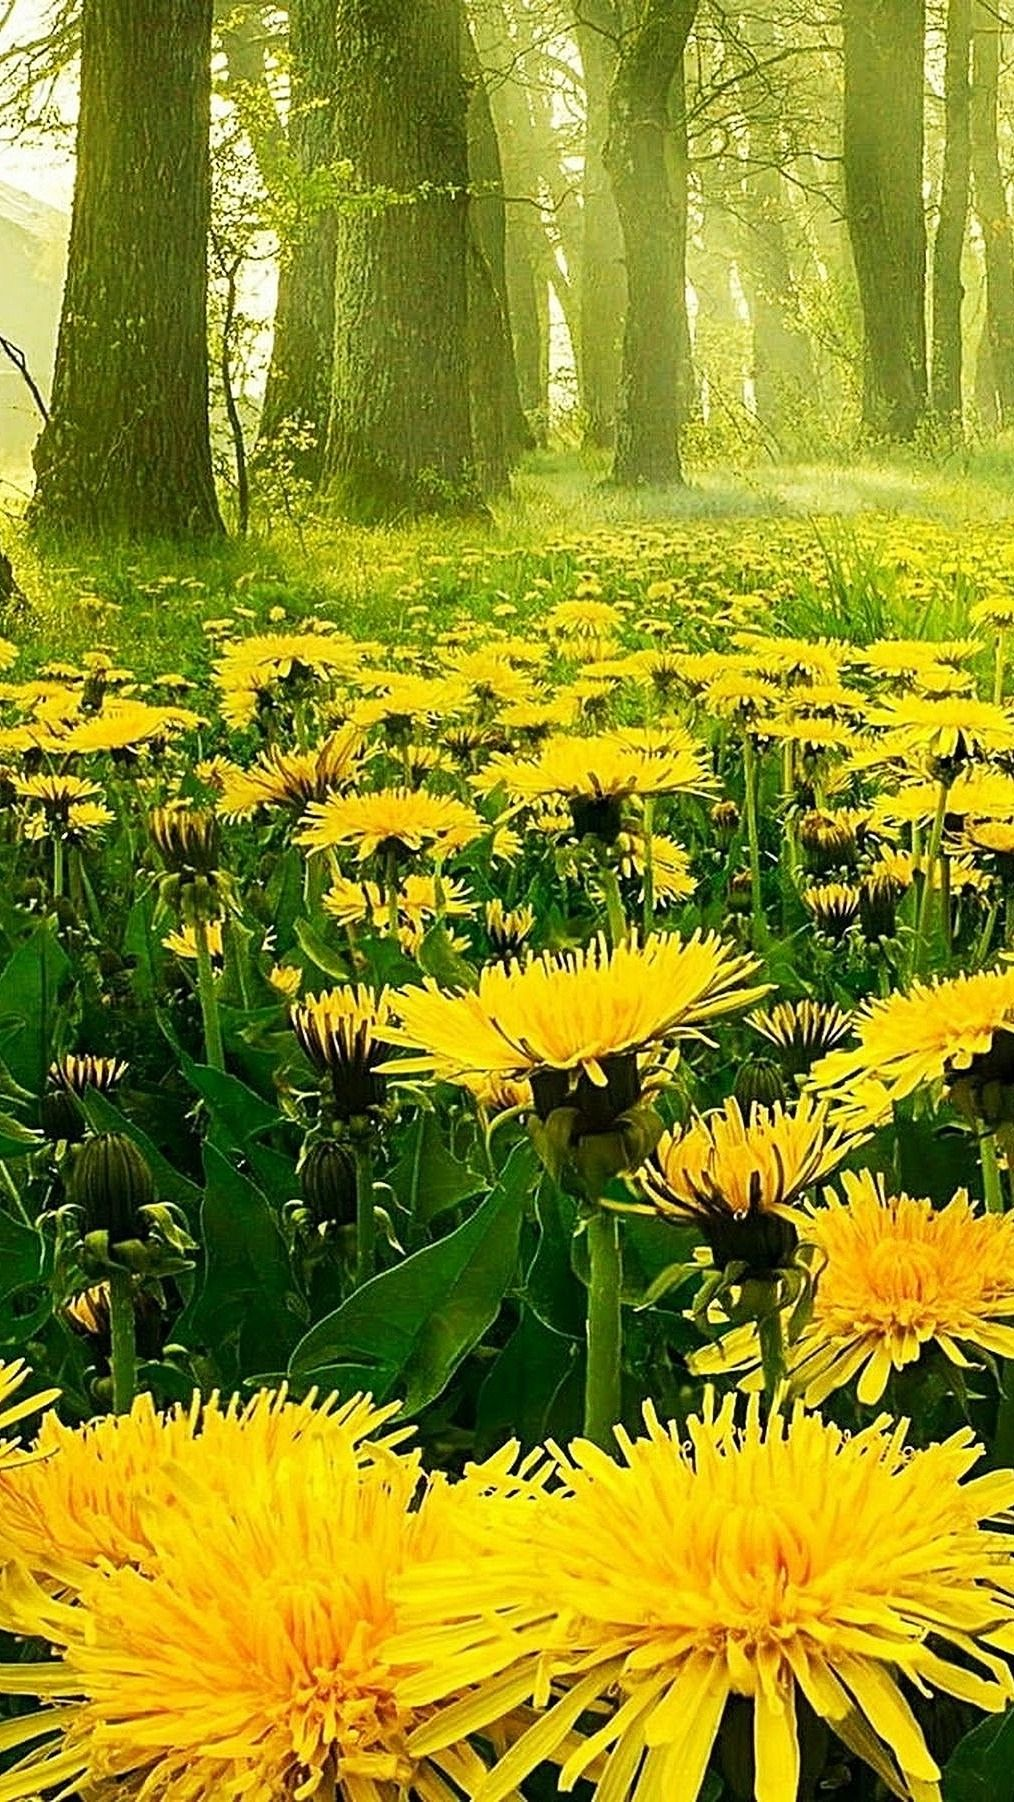 Pin By Mary Azzurro On A Summer Nature Photography Spring Photography Nature Beautiful Nature